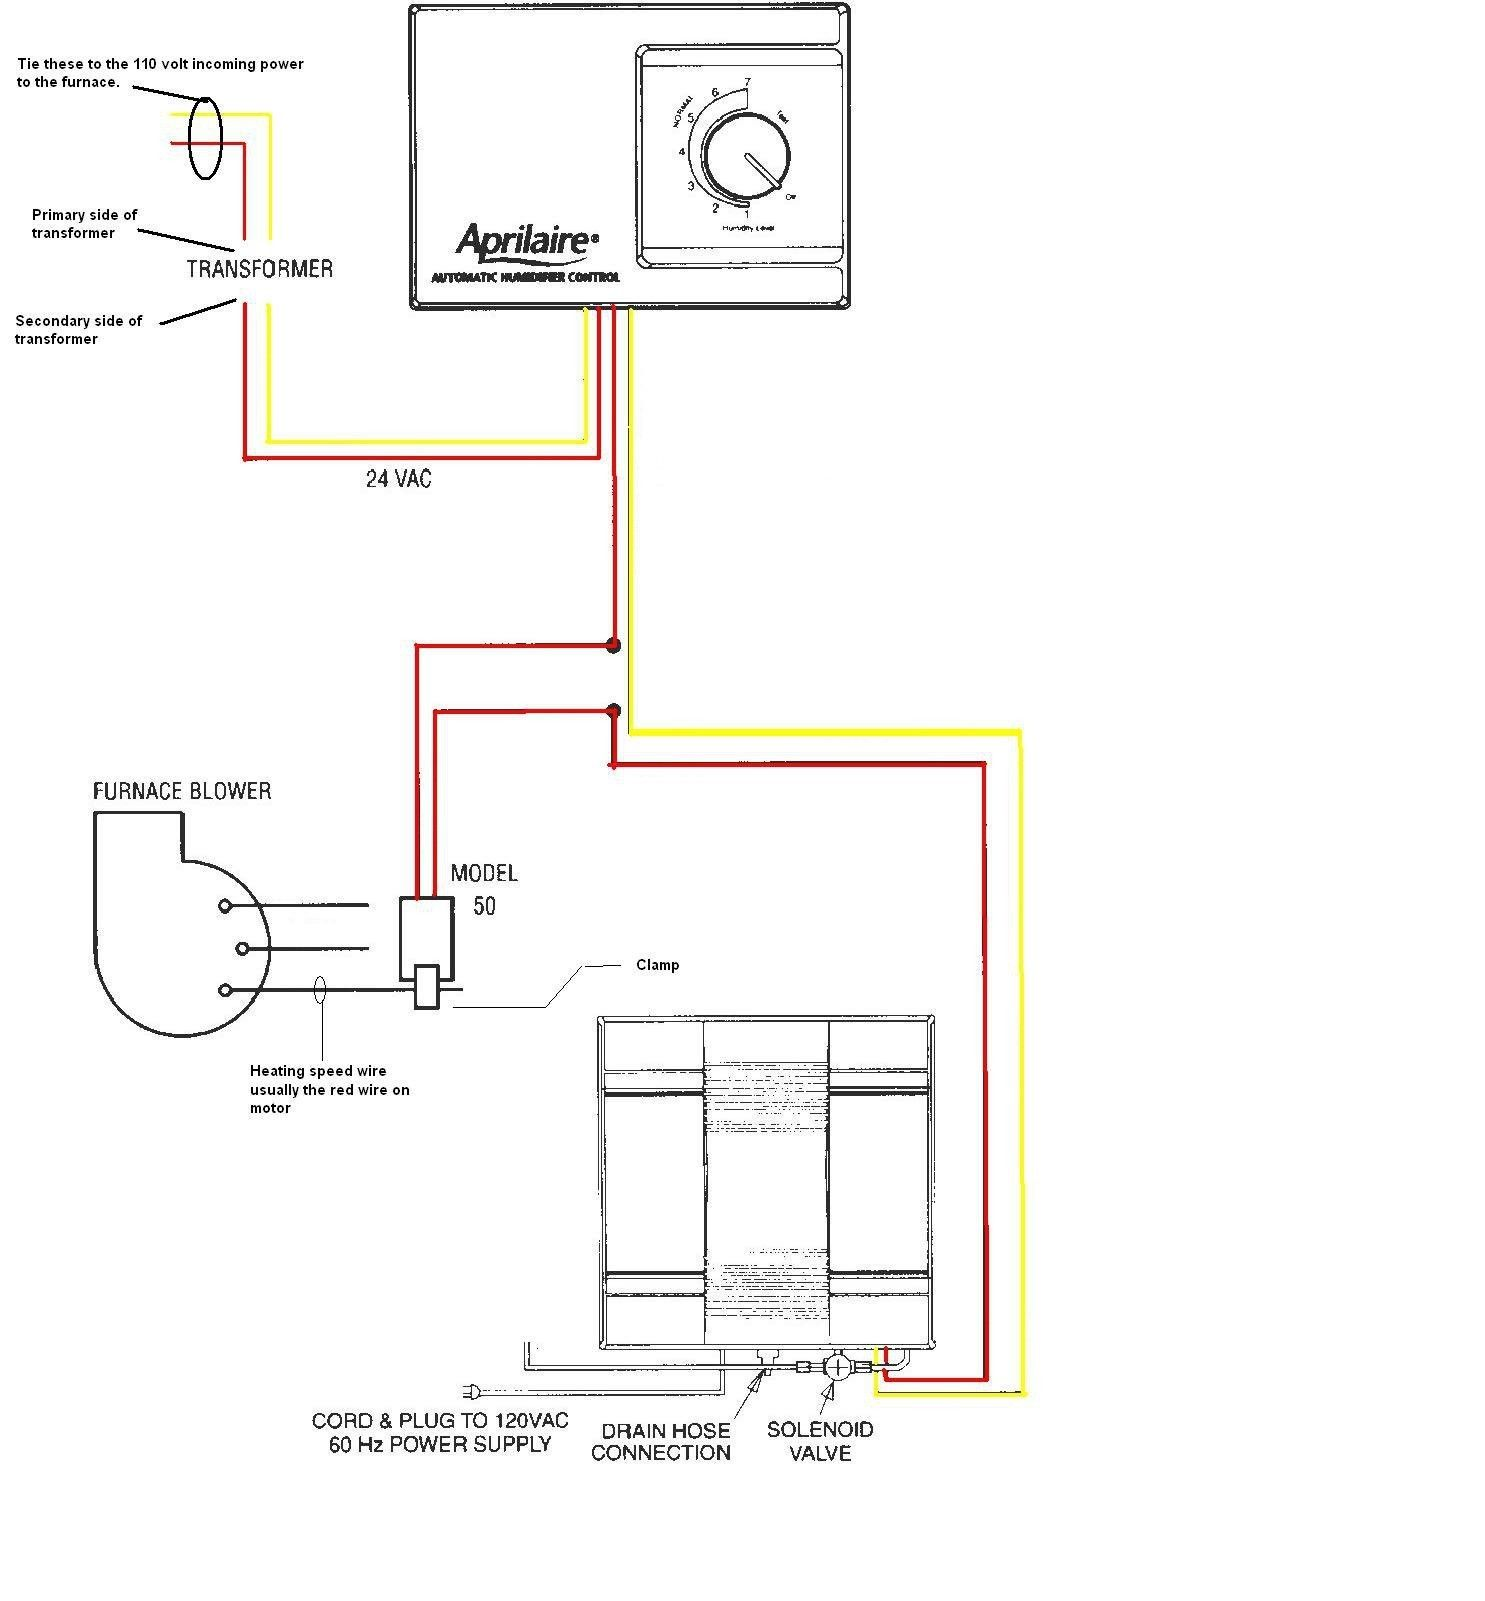 Unique Wiring Diagram For A Honeywell Thermostat Diagram House Wiring Electrical Diagram